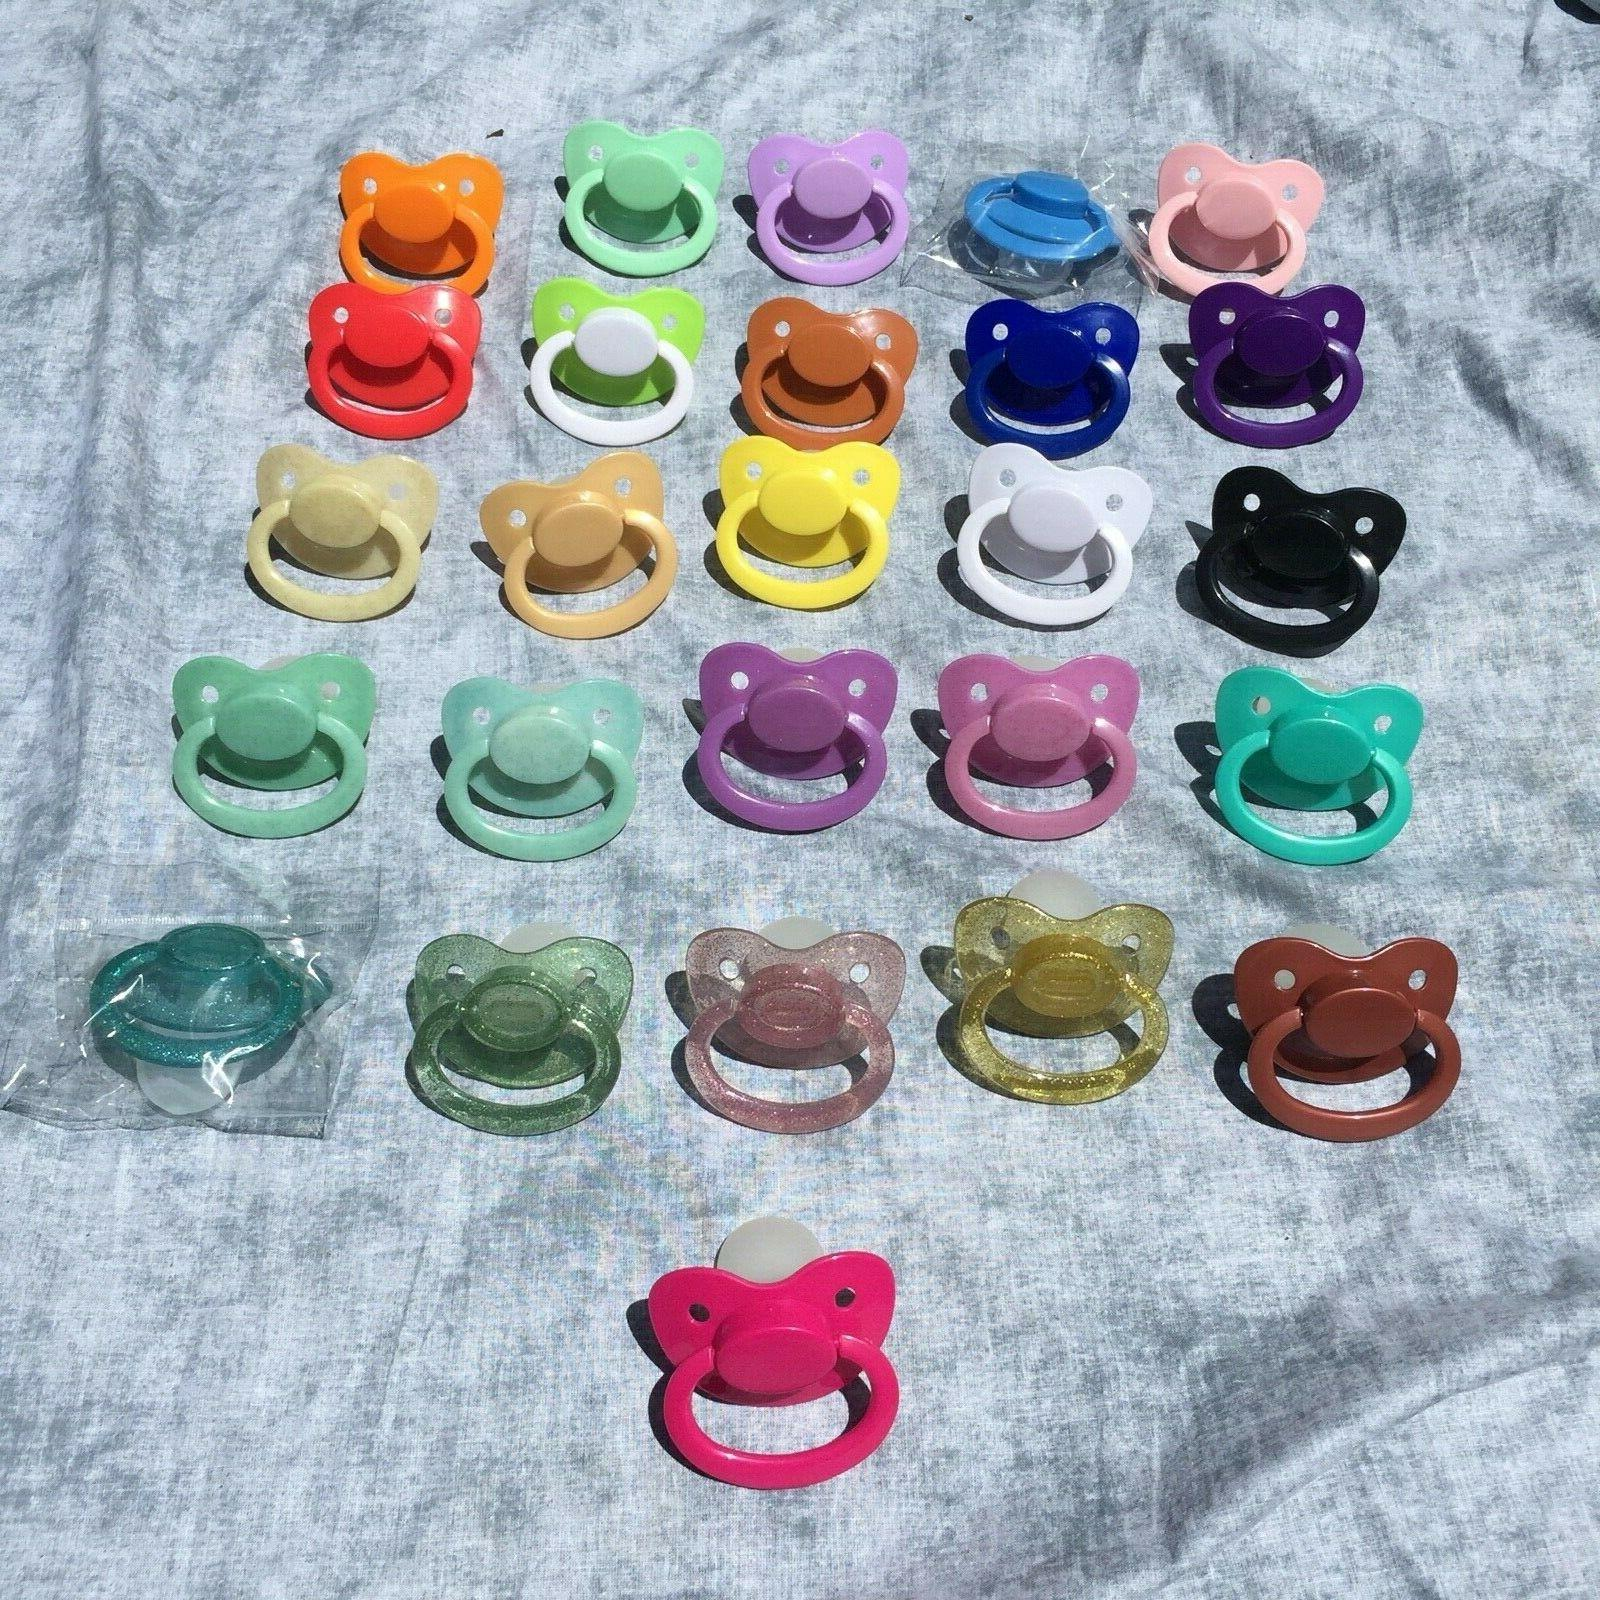 adult sized pacifier soother oral fixation snoring